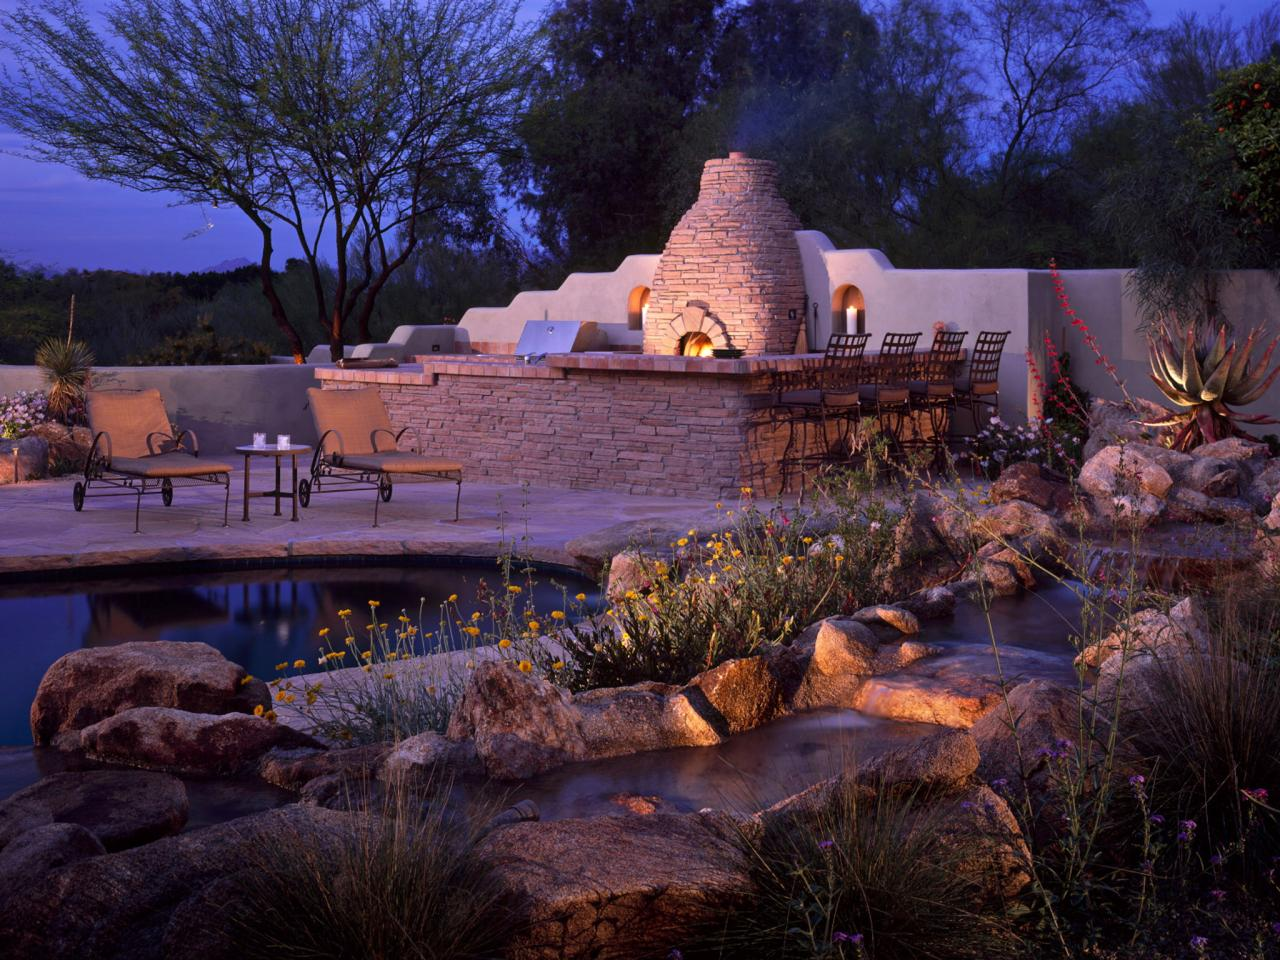 Outdoor Entertaining Area With Grill And Stone Fireplace, Bar Area With  Chairs, Pond With Plants, Rocks, And Flowers, Nighttime View Of Outdoor  Room.